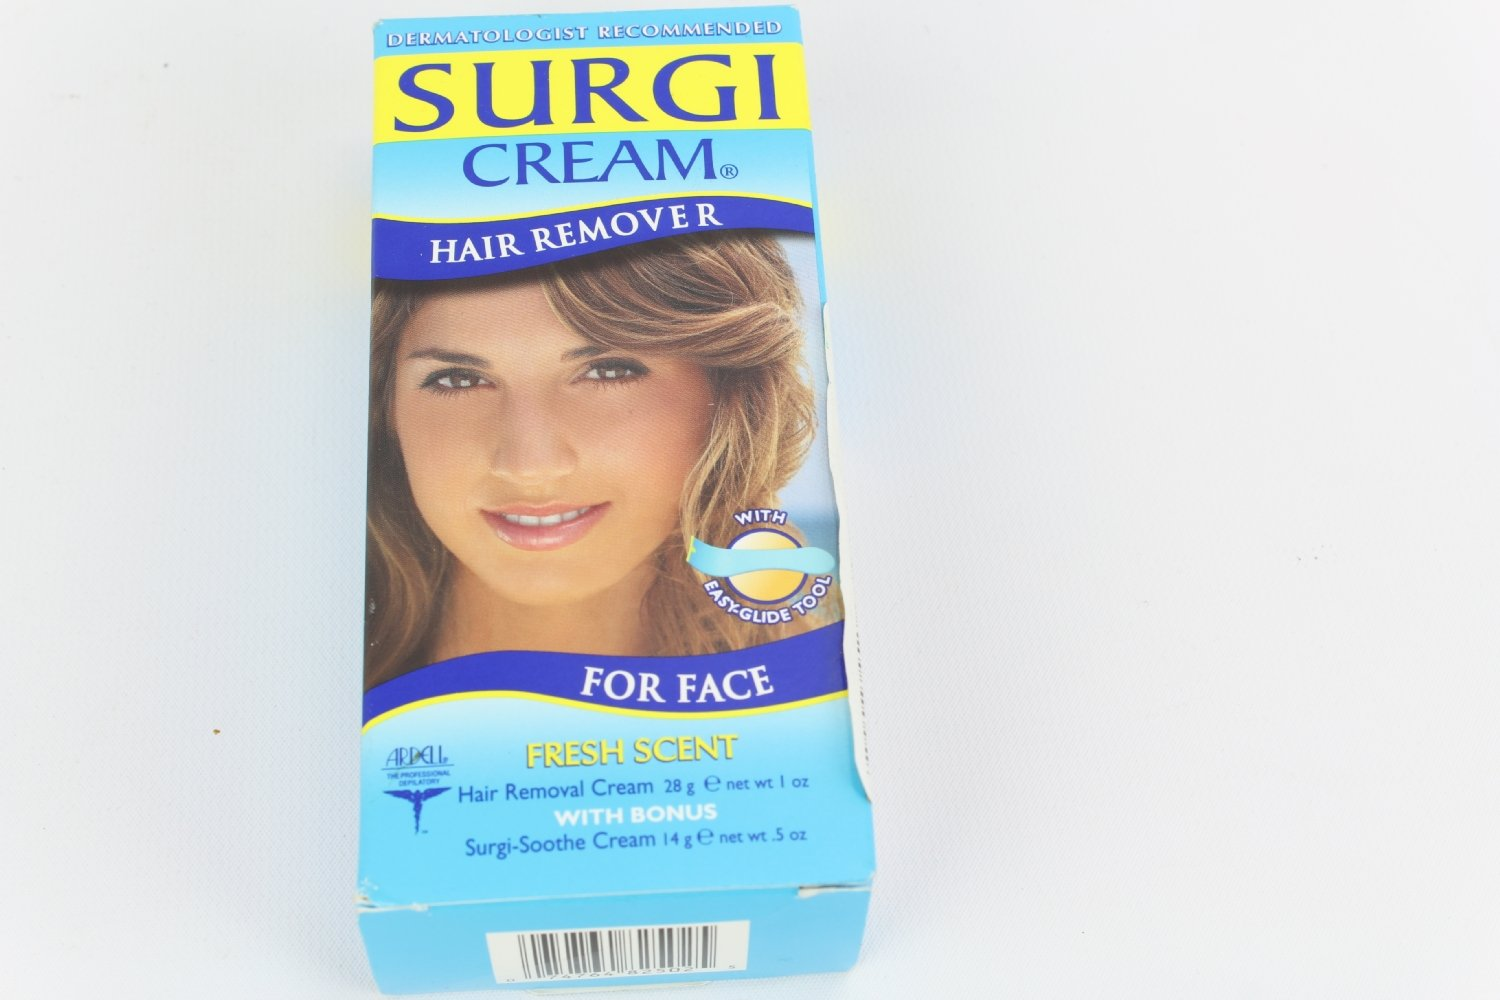 Surgi-Care Surgi-Cream Invisi-Bleach Hair Remover for Face - Fresh - 1.5 oz Hair Motion